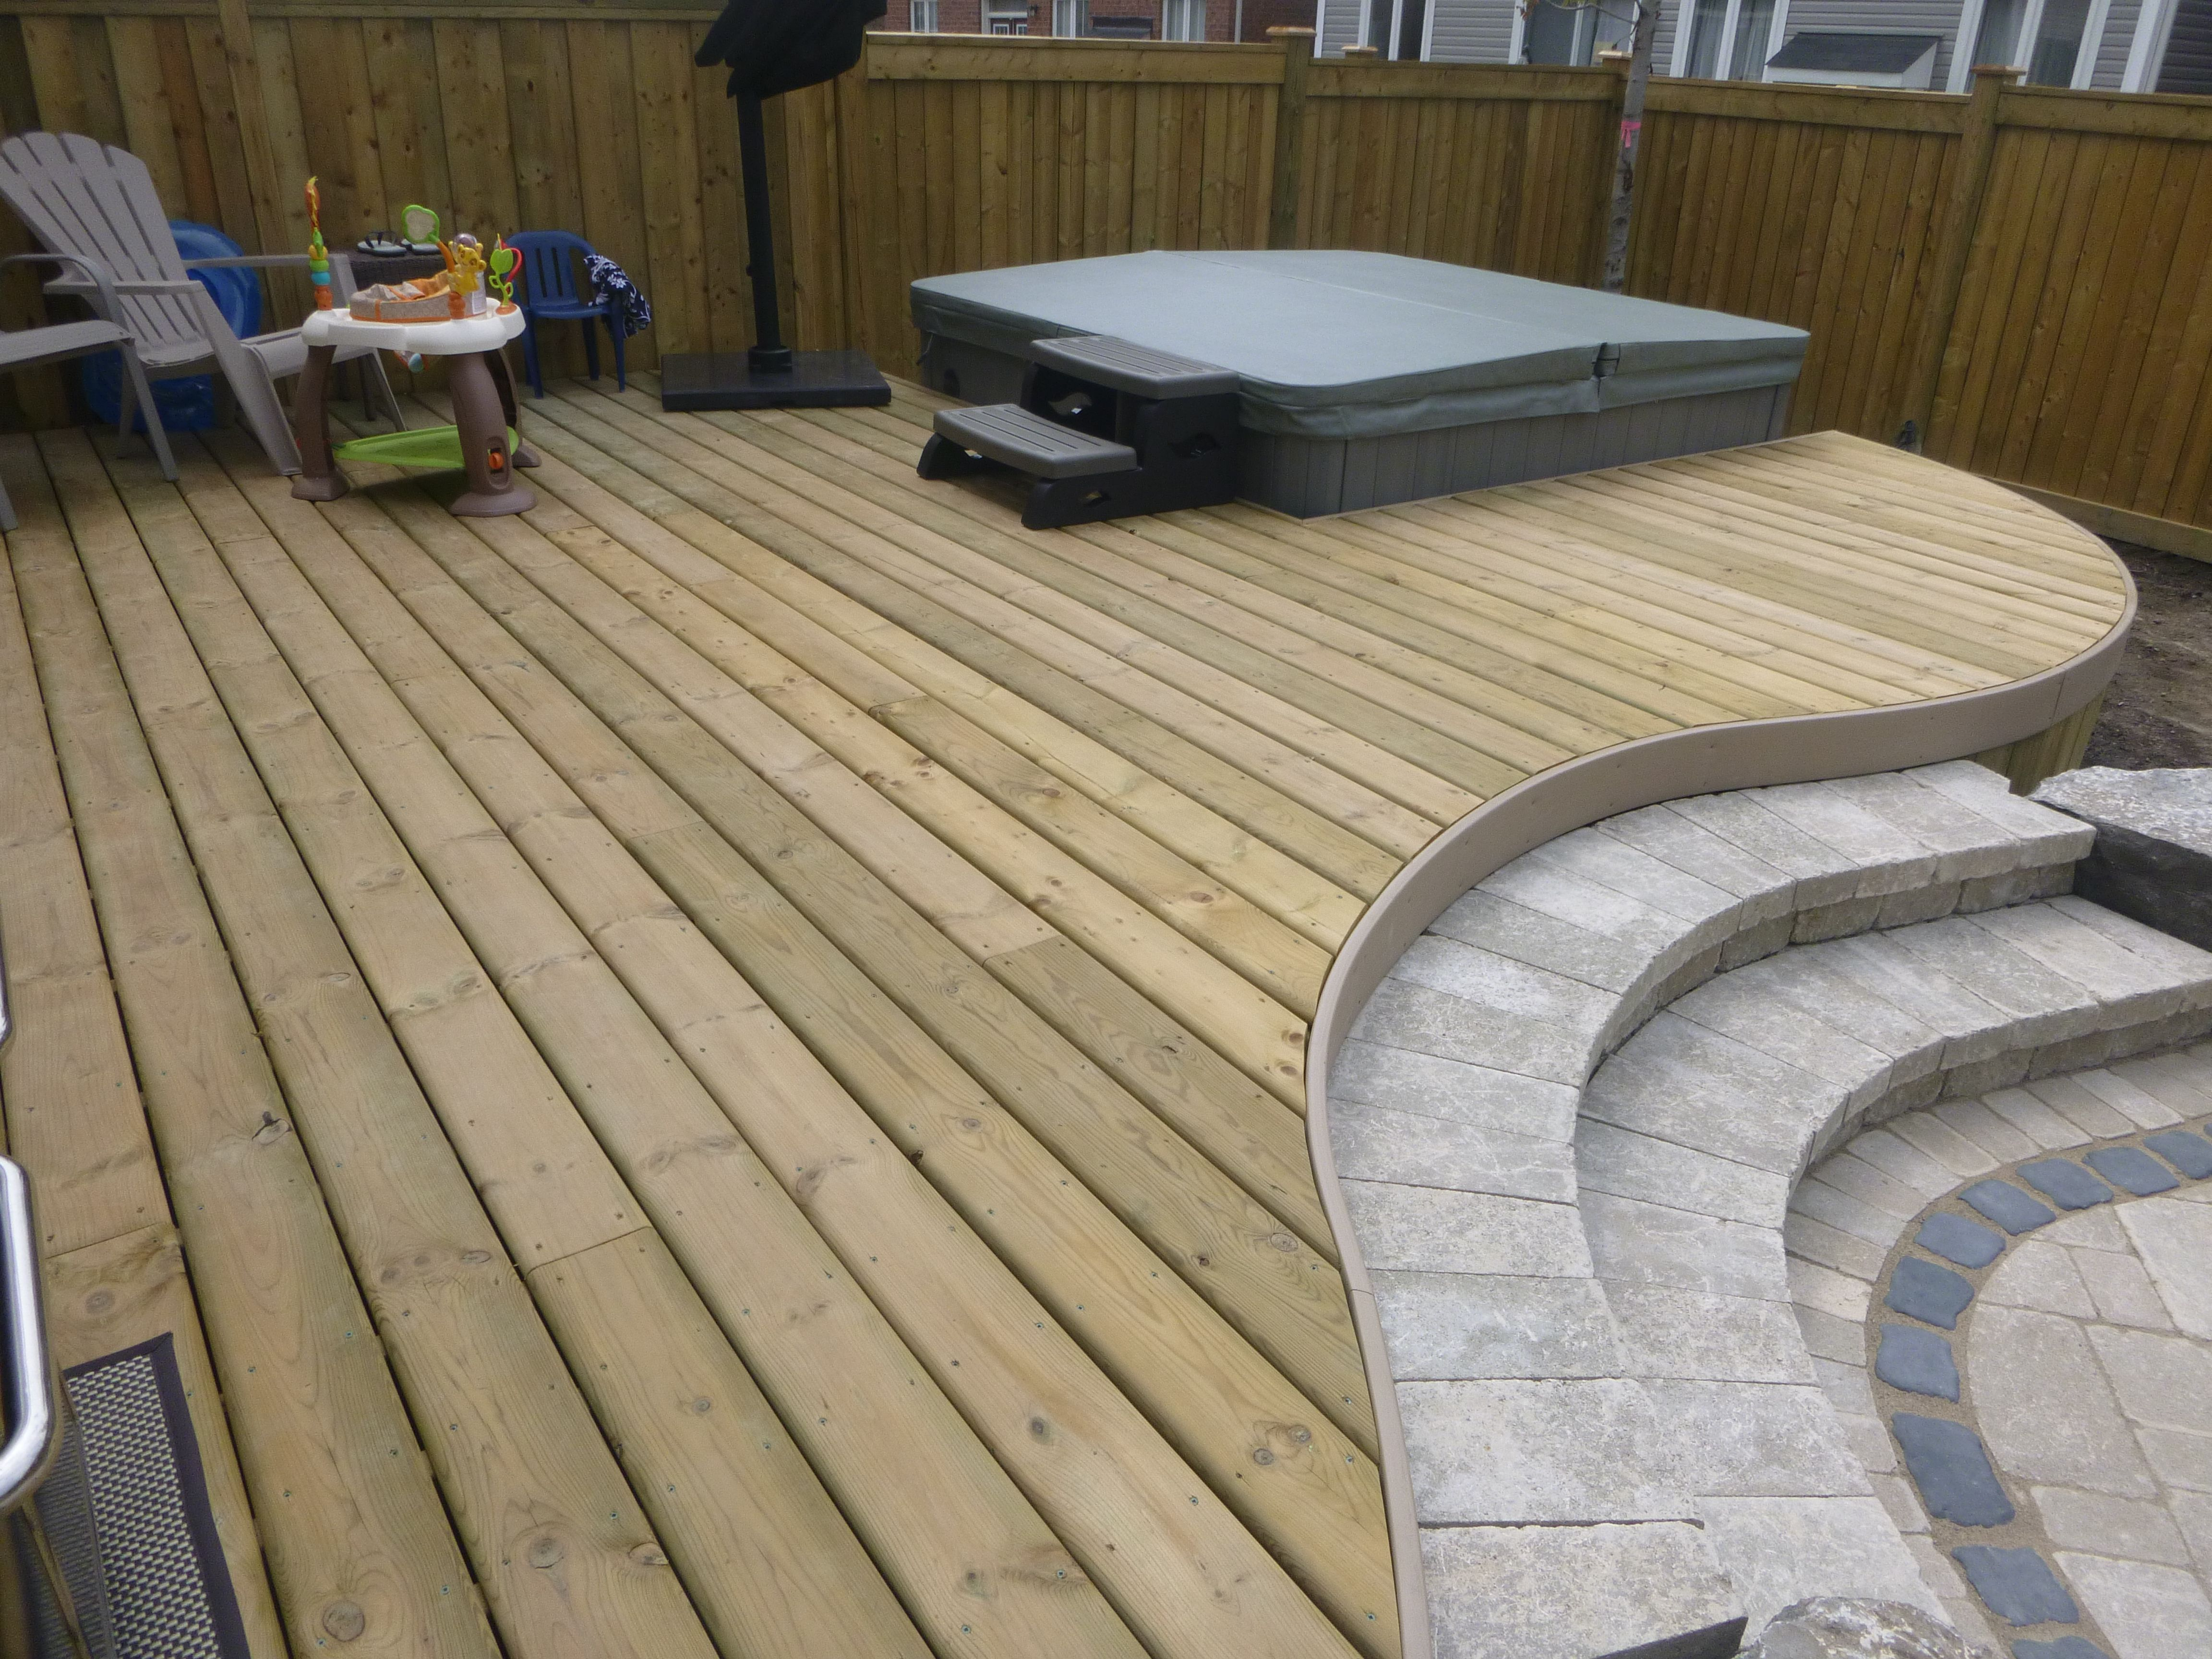 Pressure Treated Deck With Curves Pvc Trim And Stone Steps Curved Patio Deck Designs Backyard Curved Deck